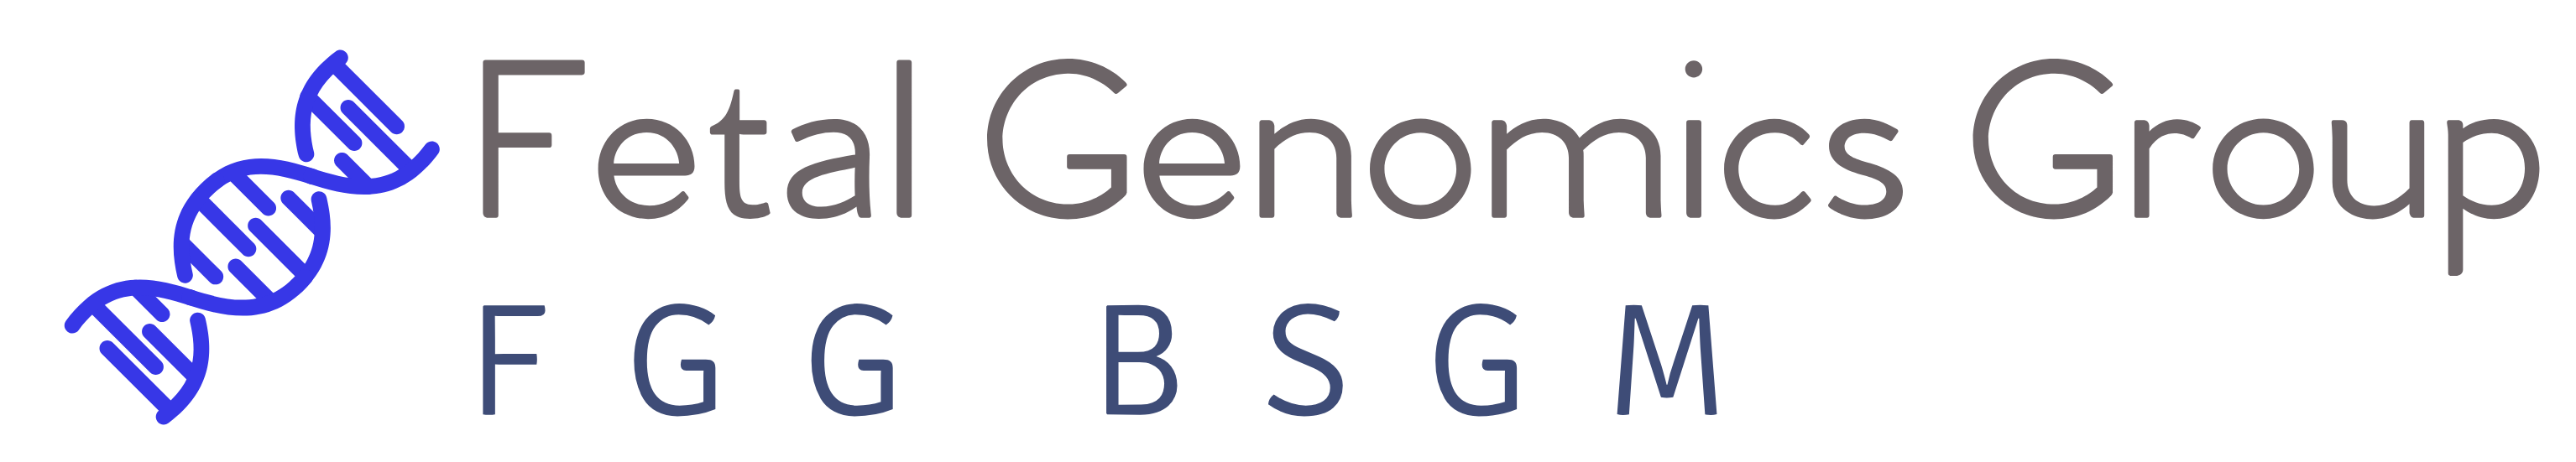 Fetal Genomics Group